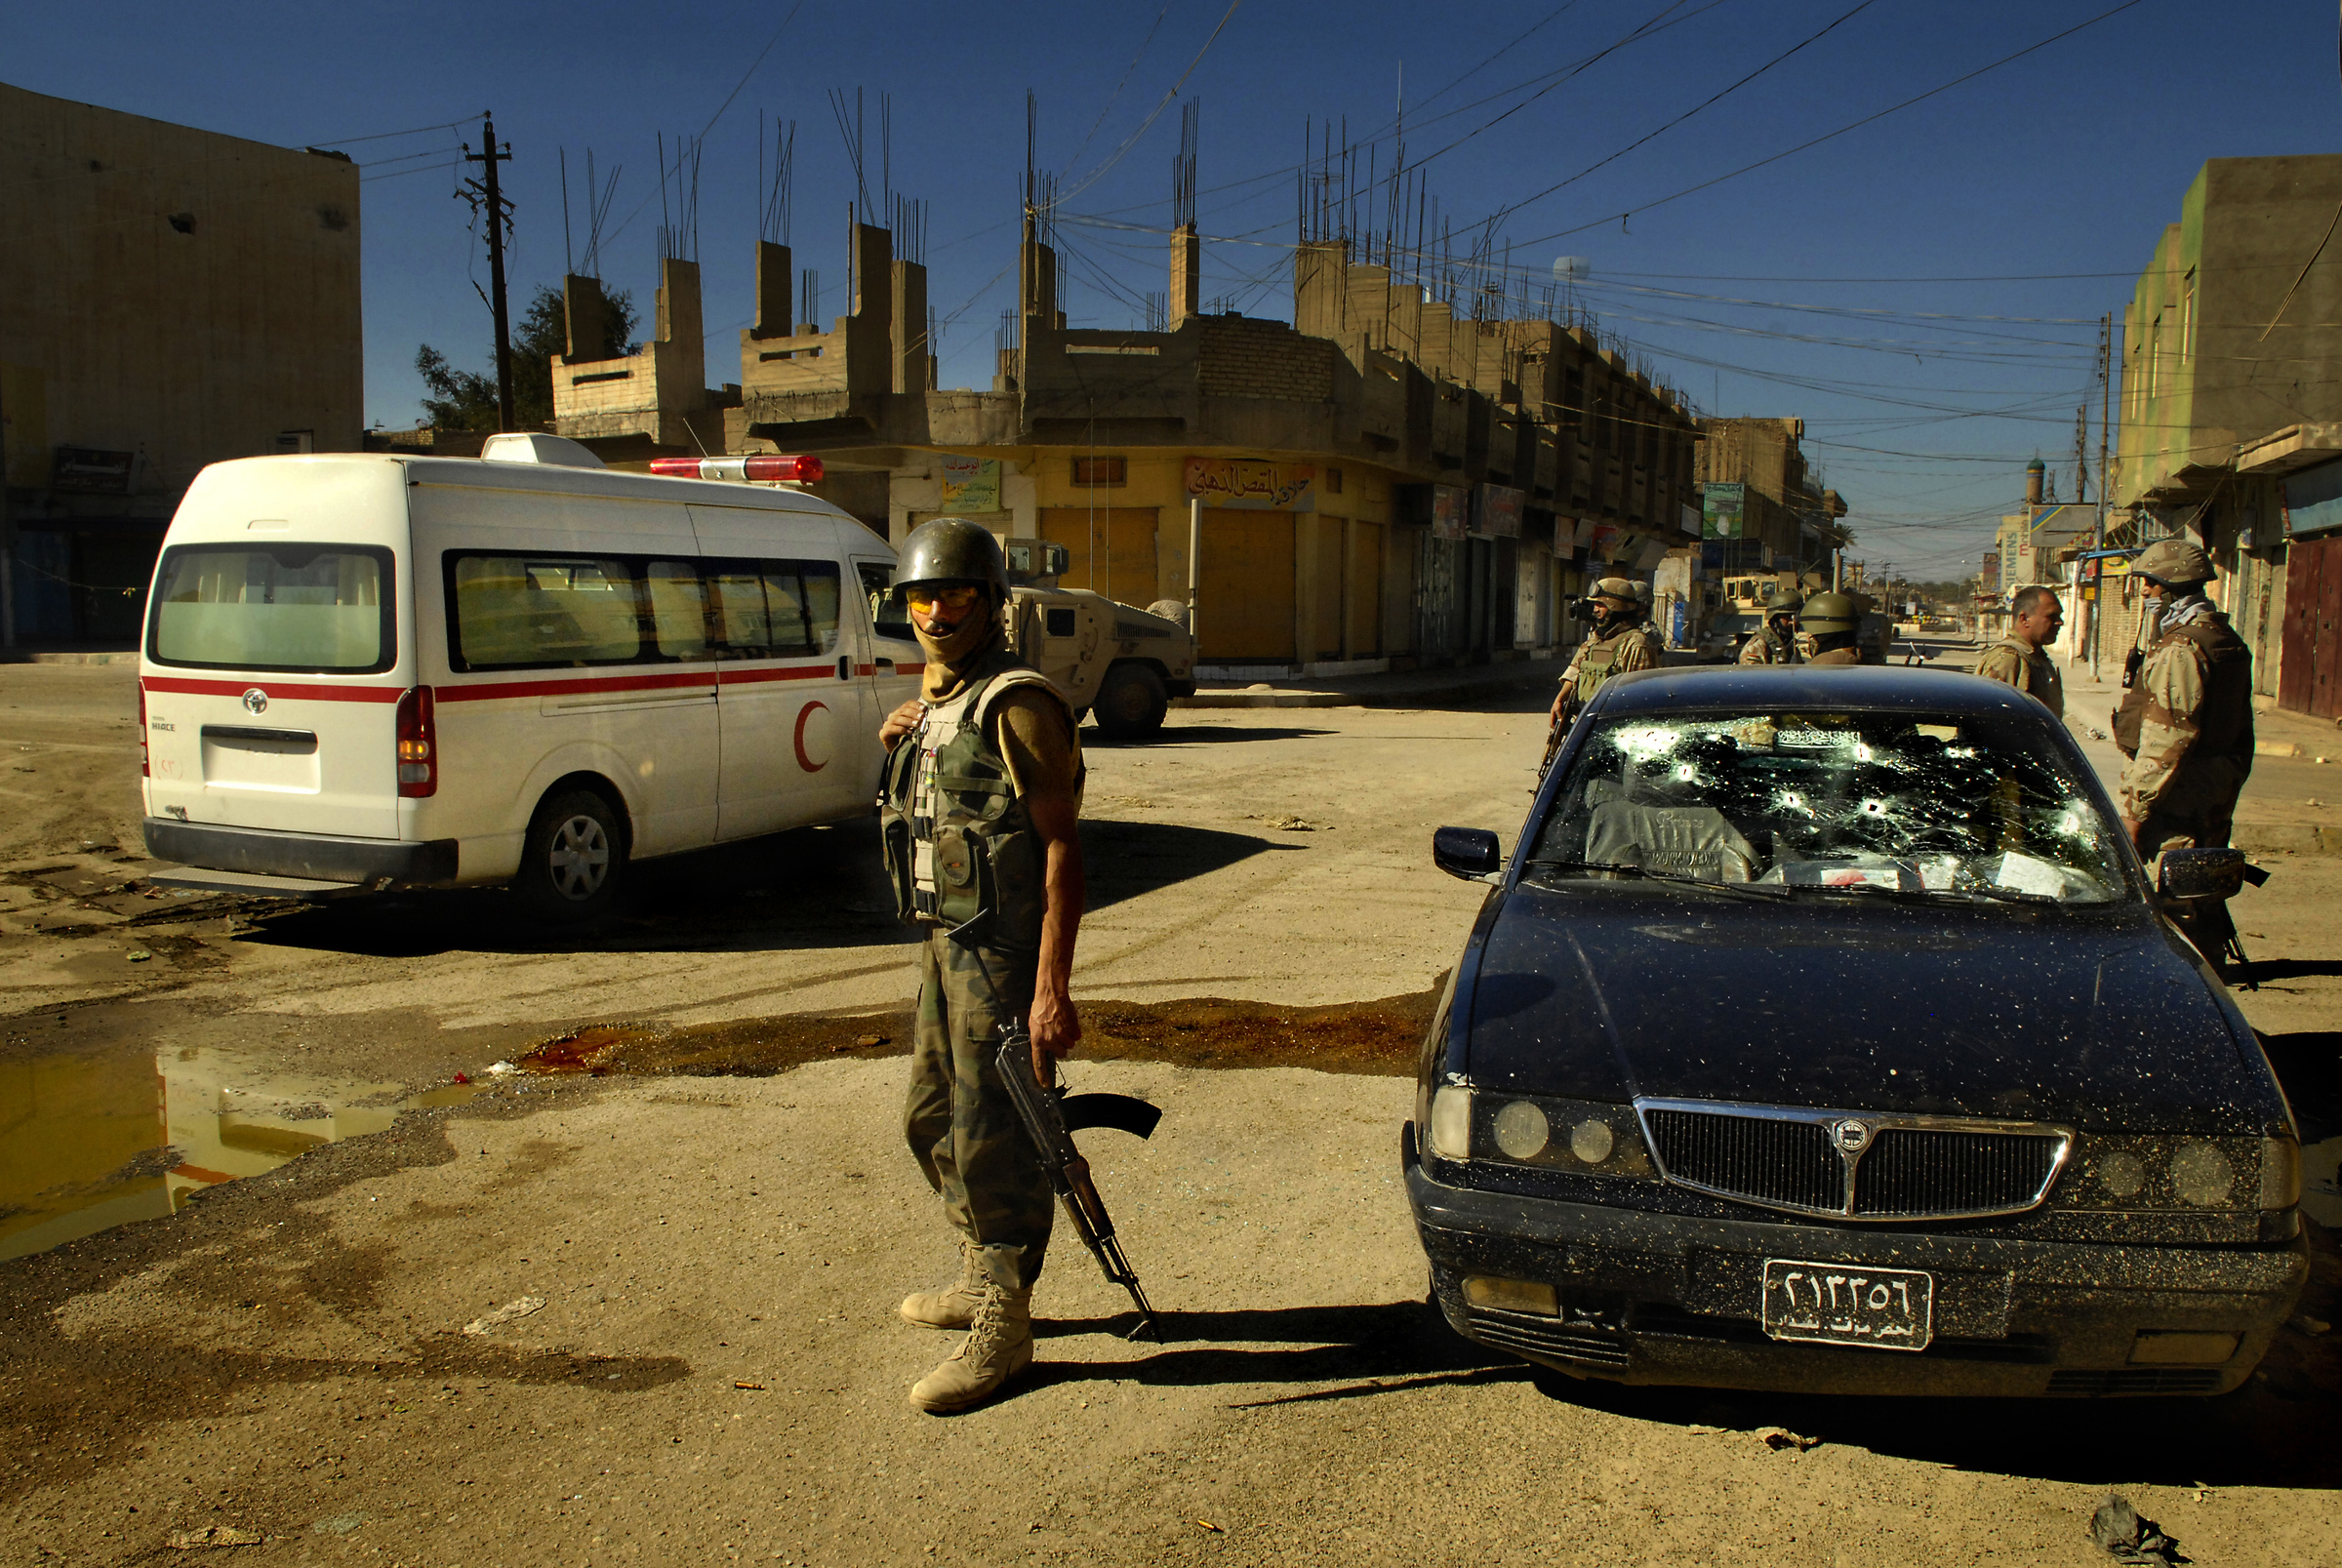 After shooting a fleeing insurgent's vehicle, members of the Iraqi army, 4th Battalion, 2nd Brigade, 5th Division, provide medical assistance to the car's occupants during an operation in Old Baqubah, Iraq. 2007 © Stacy L. Pearsall